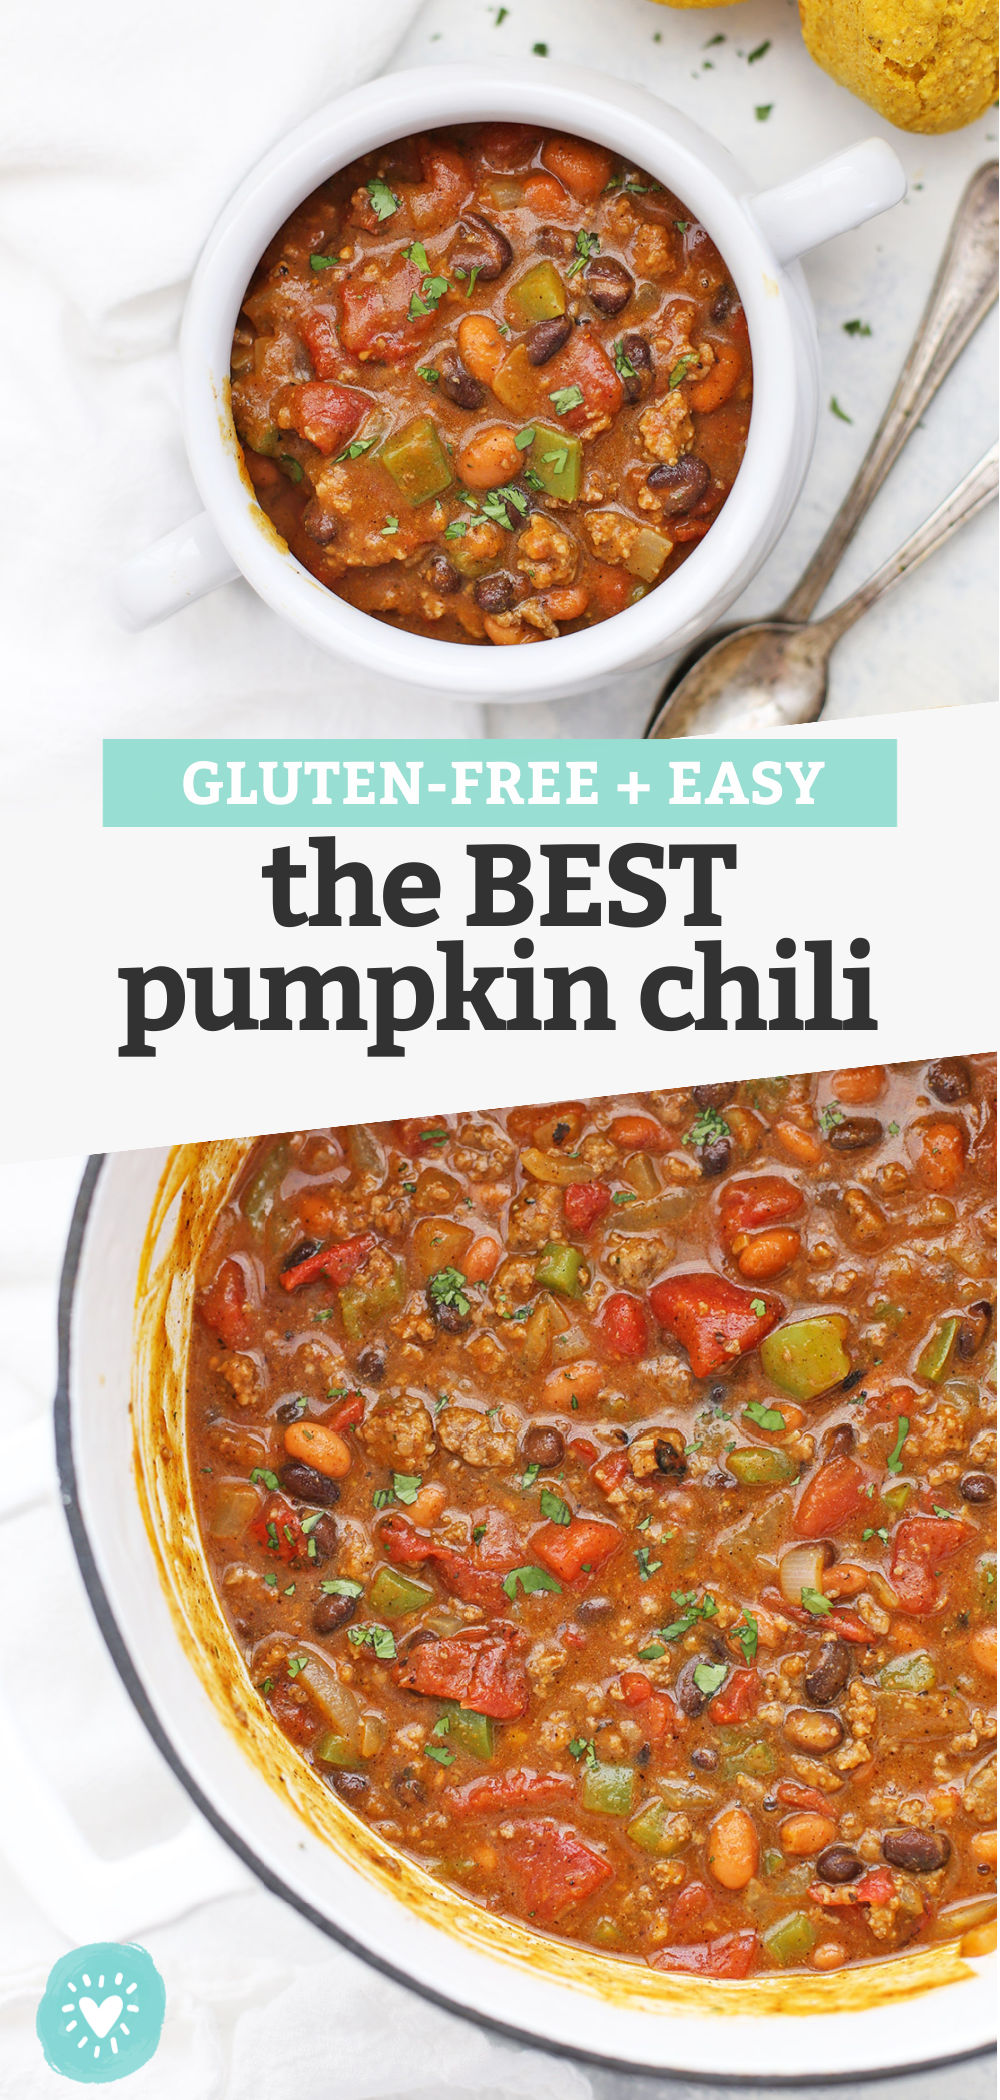 The BEST EVER Pumpkin Chili - This pumpkin chili recipe might just win you a prize! (gluten-free, paleo-friendly and vegan-friendly!) // pumpkin recipes // pumpkin soup // chili cook-off winner #pumpkin #chili #chilicookoff #glutenfree #dairyfree